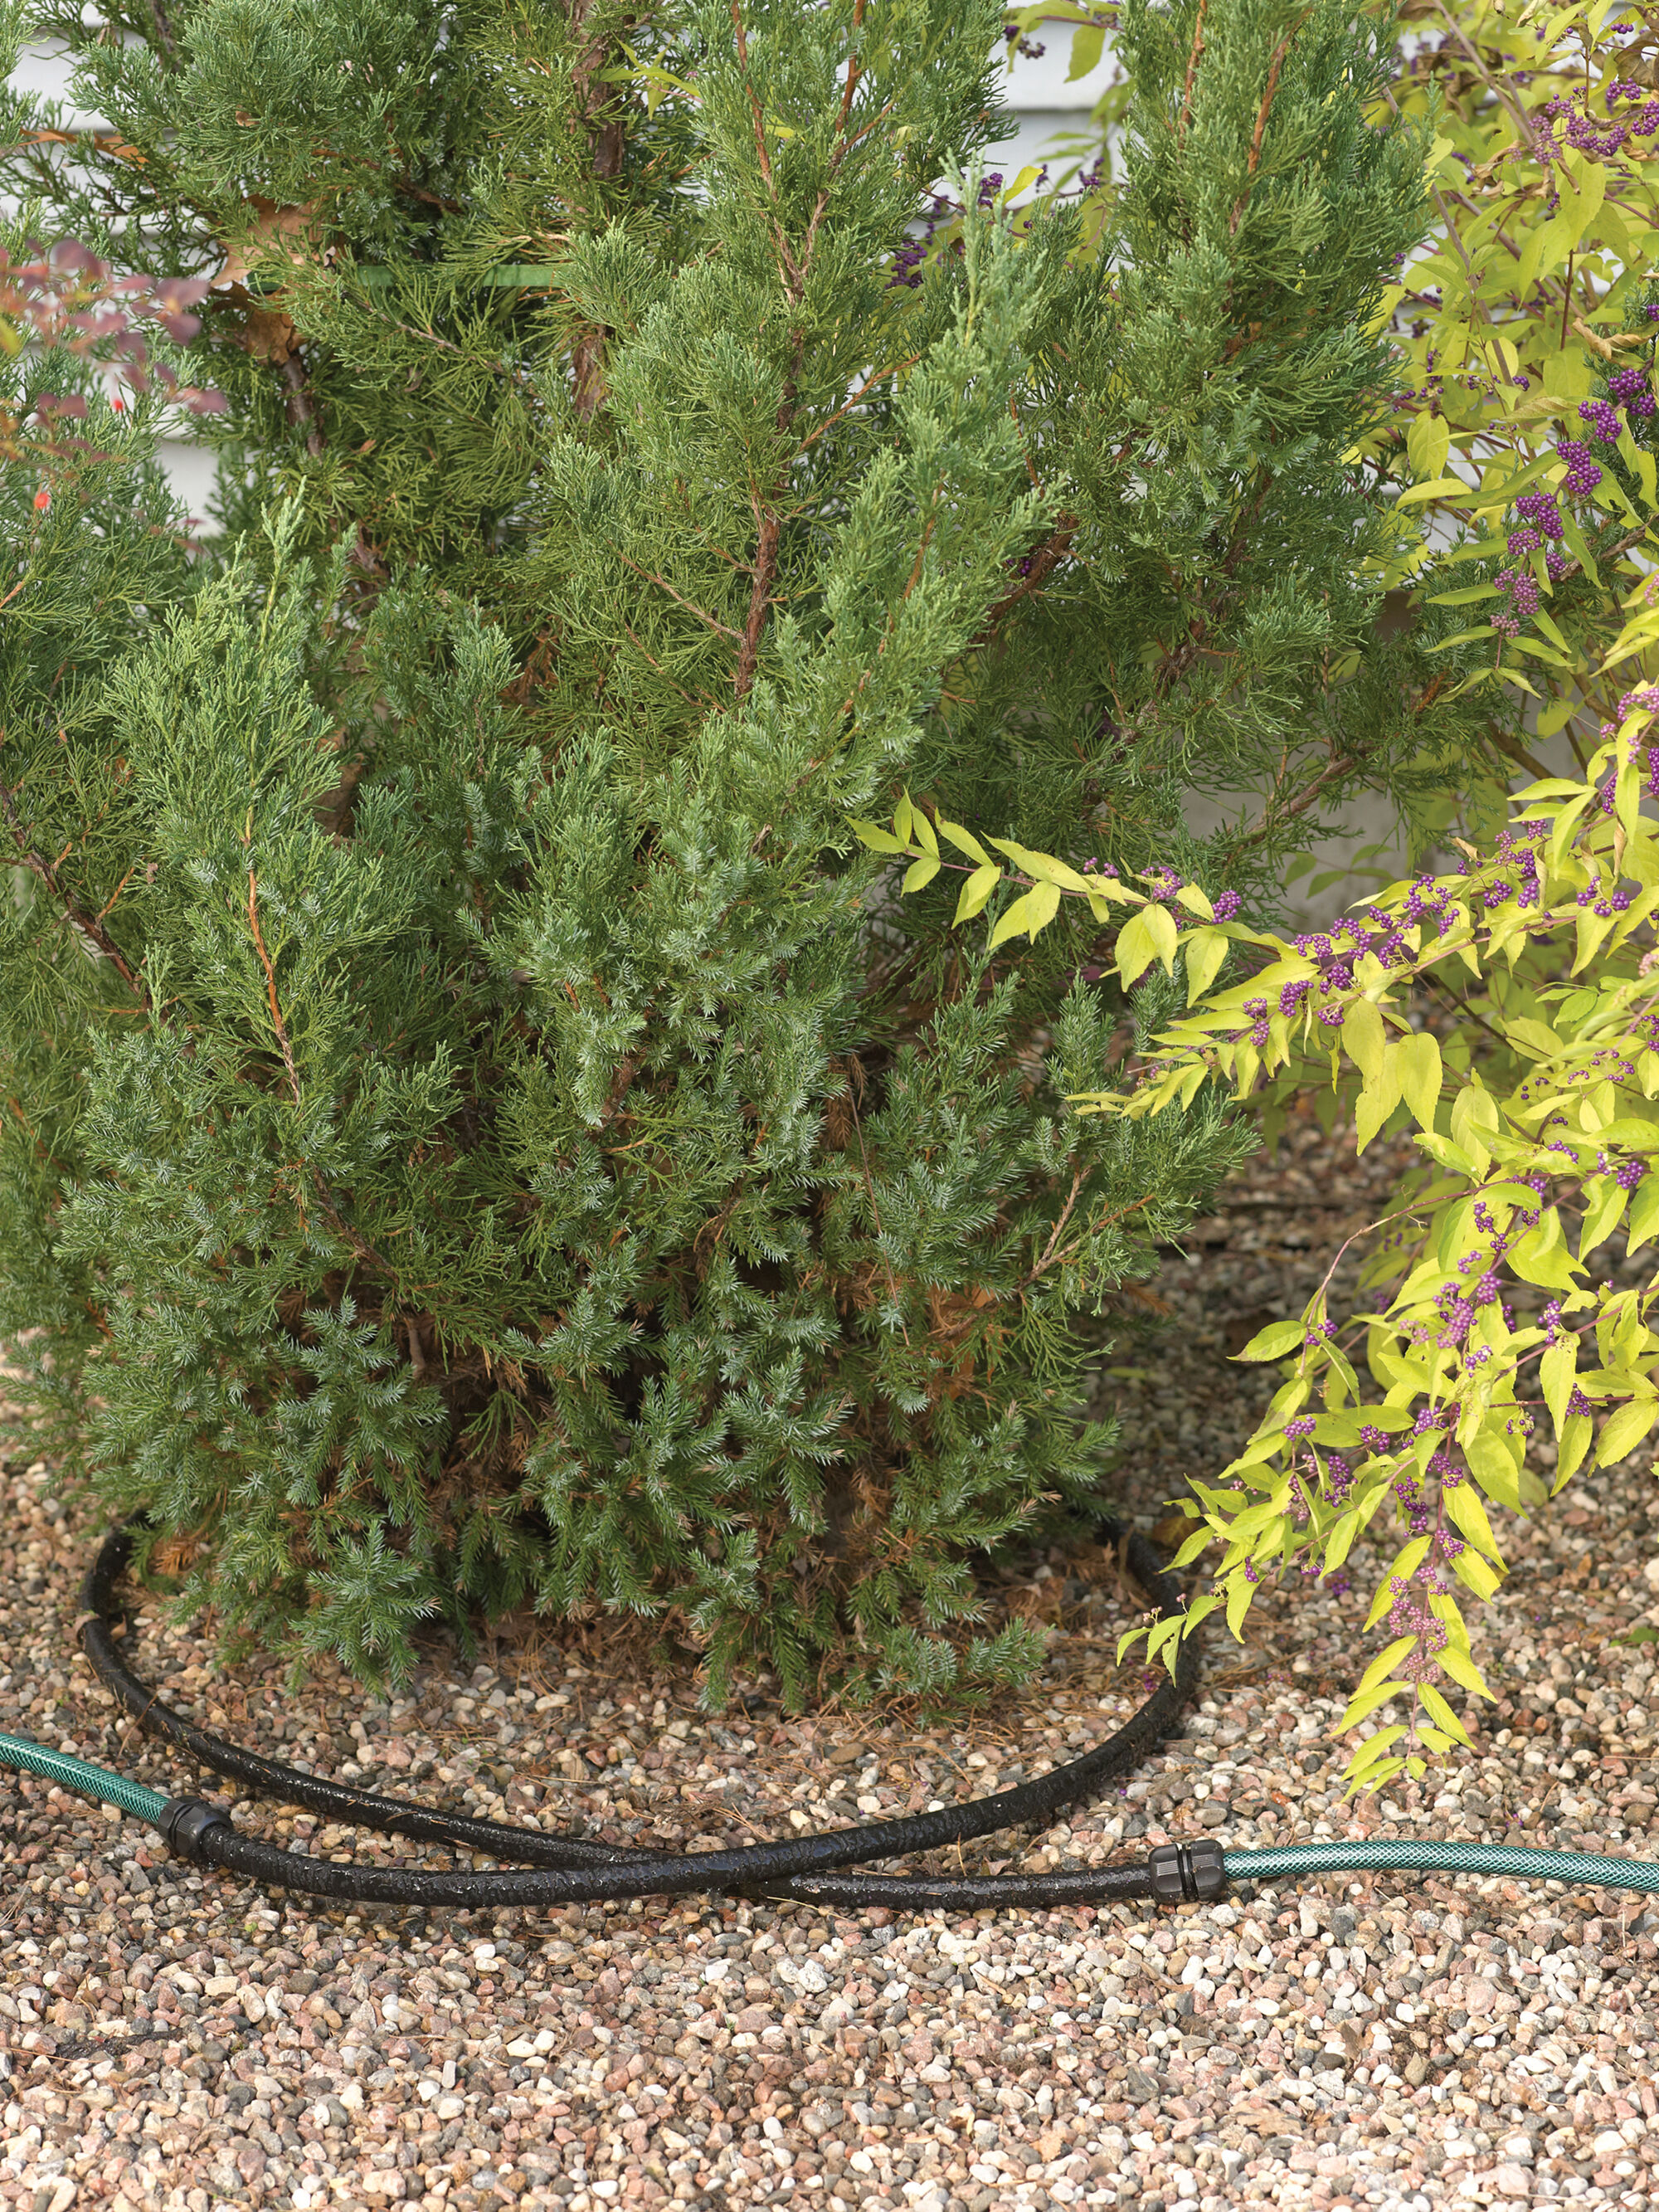 Soaker Hoses and Drip Irrigation Systems Gardenerscom